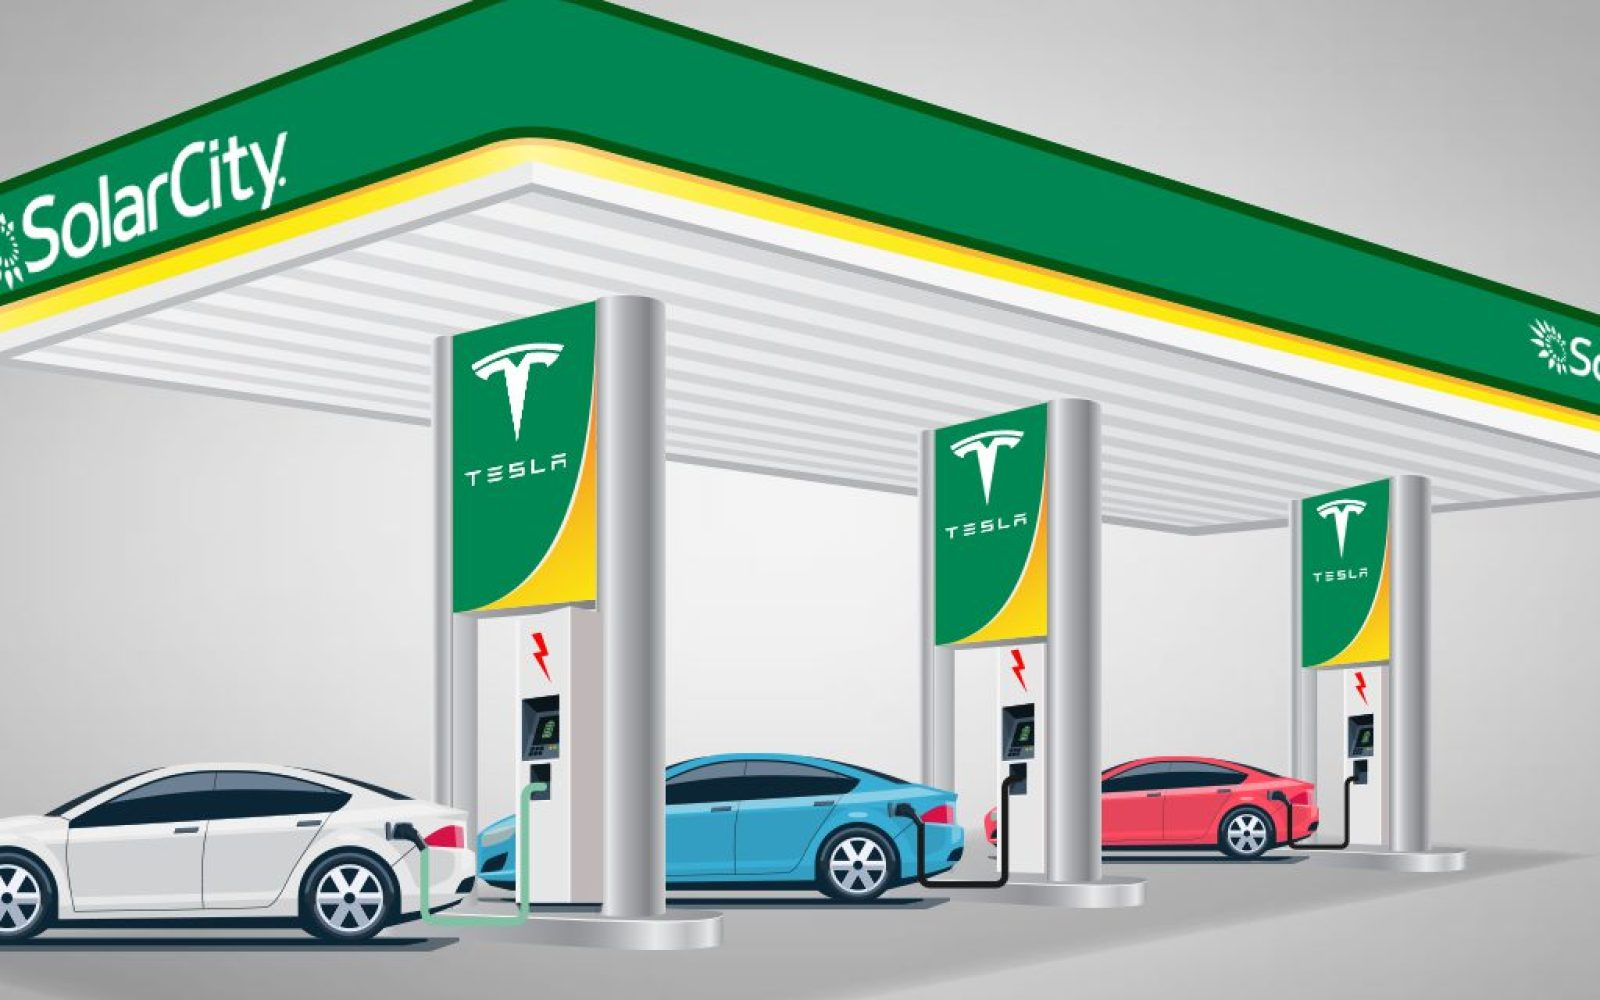 Tesla Tsla Is Grossly Undervaluing Solarcity Scty At 28